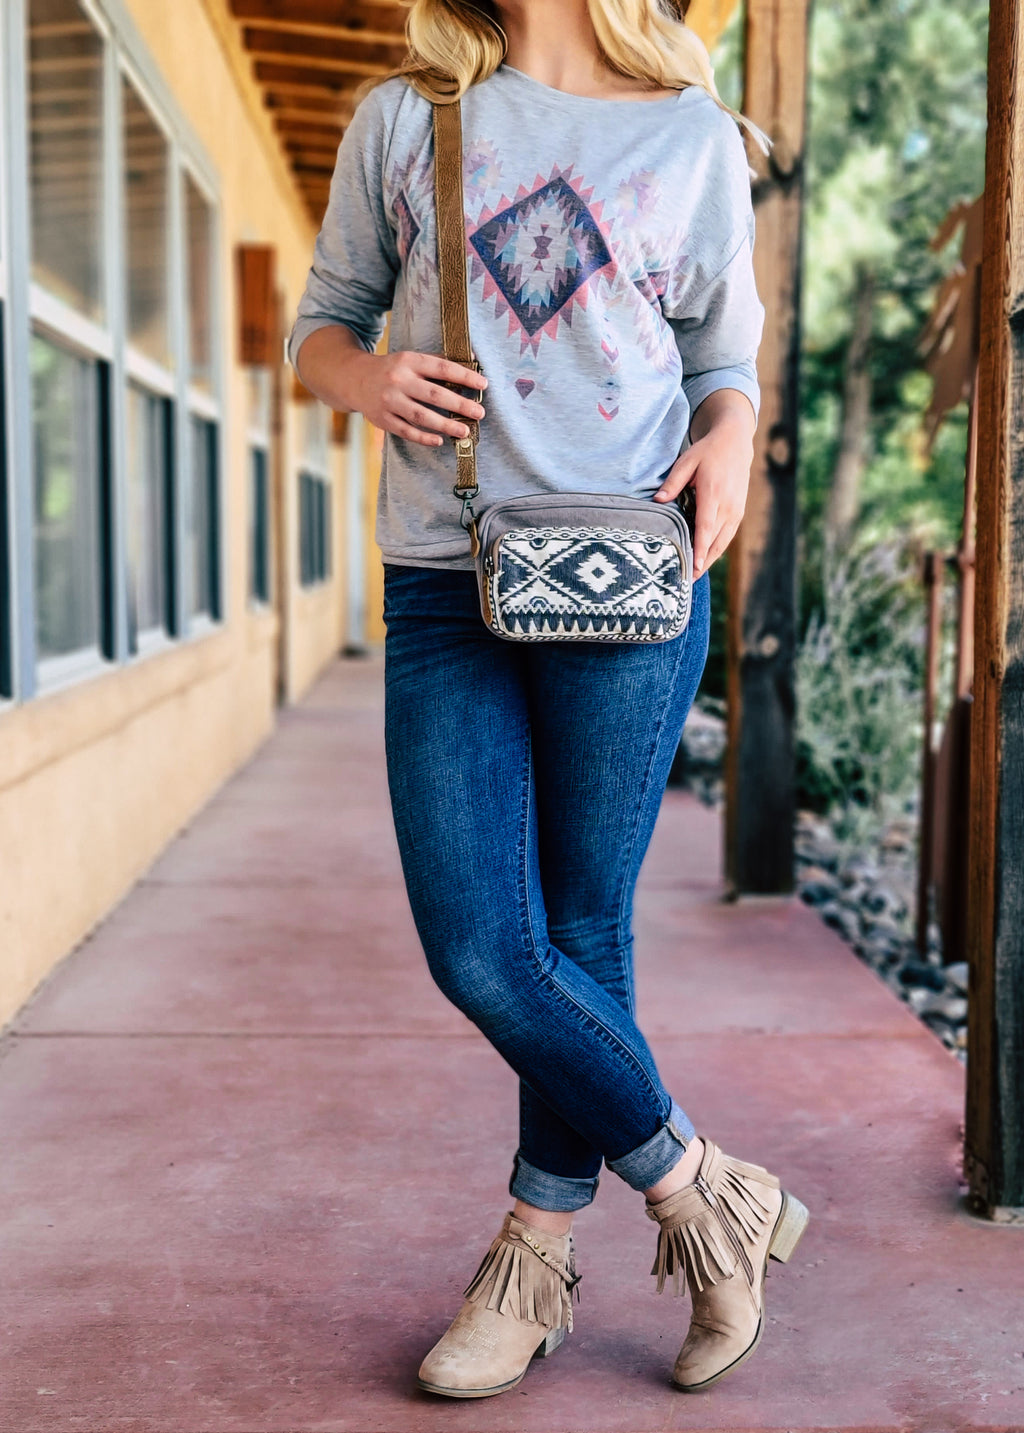 Small Grey Canvas Crossbody with Brown Leather Crossbody Strap and Dark Grey/Blue Aztec Print on Blonde Model Taken Outside in Natural Light